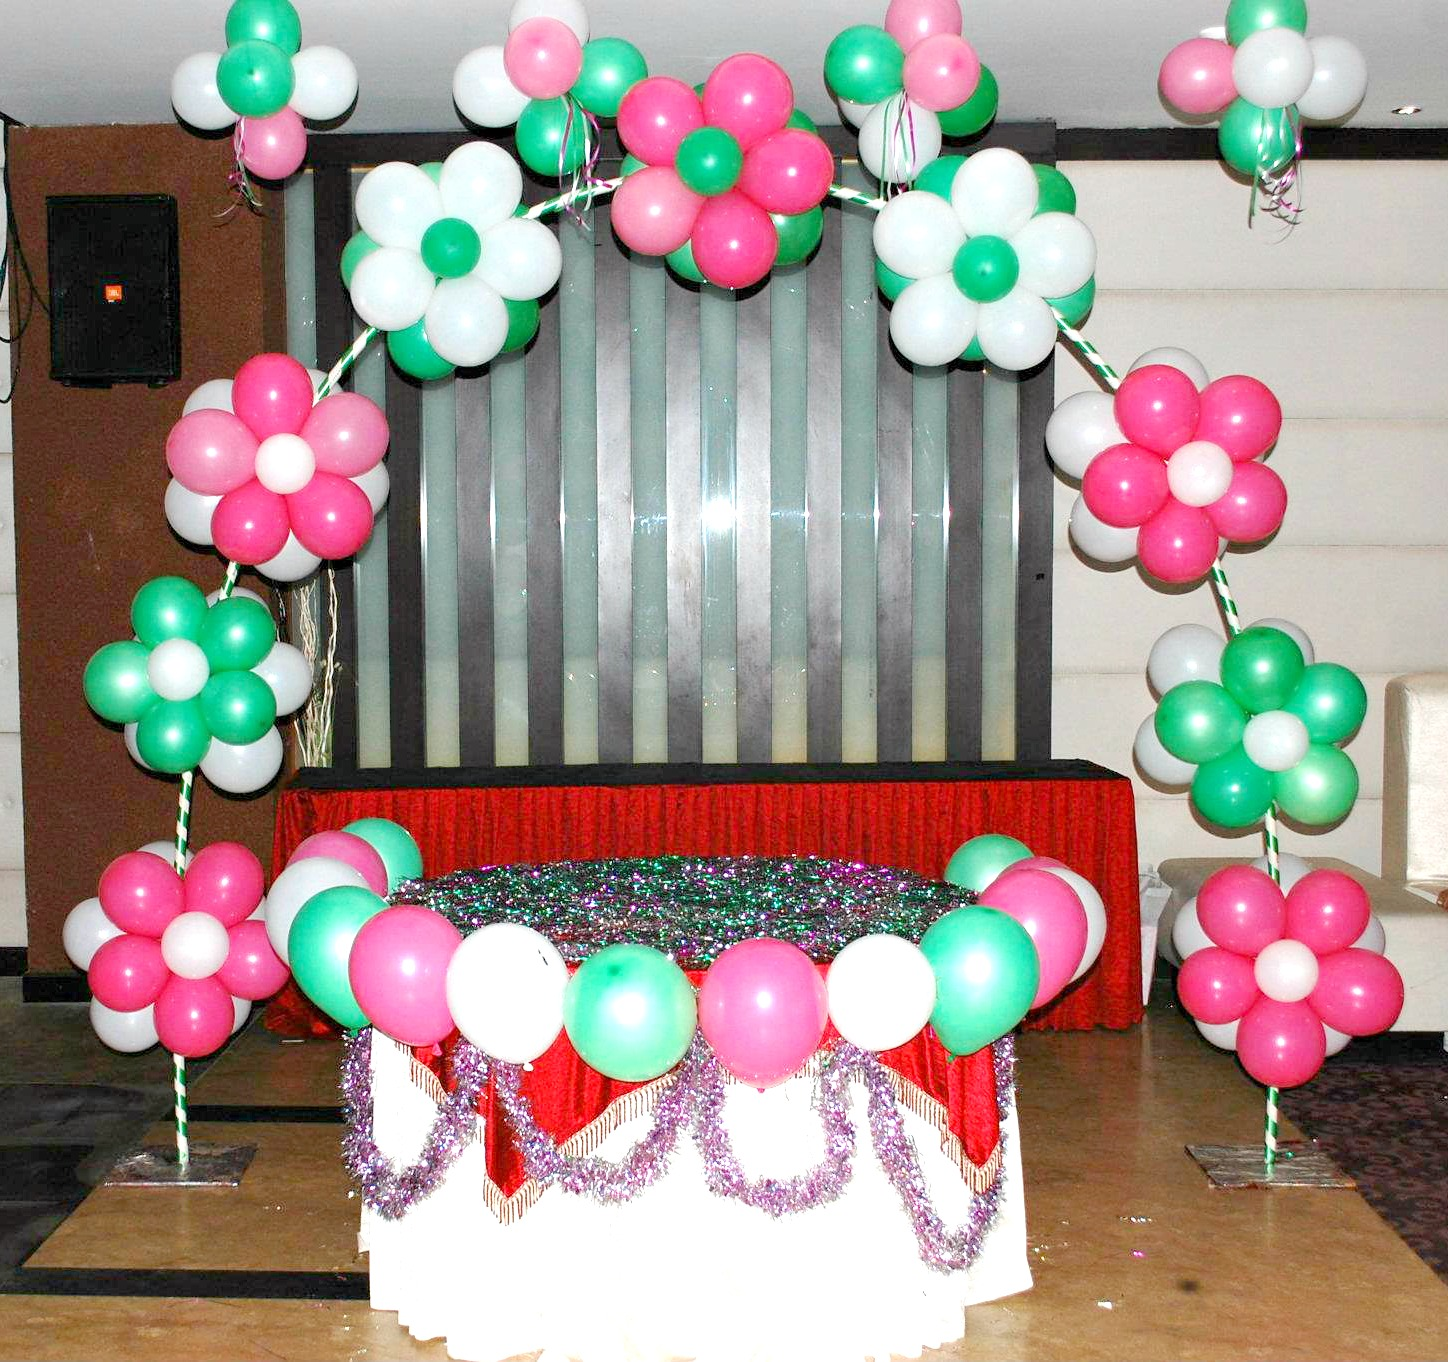 How to make balloon flowers 15 marvelous ways guide for Bed decoration with flowers and balloons